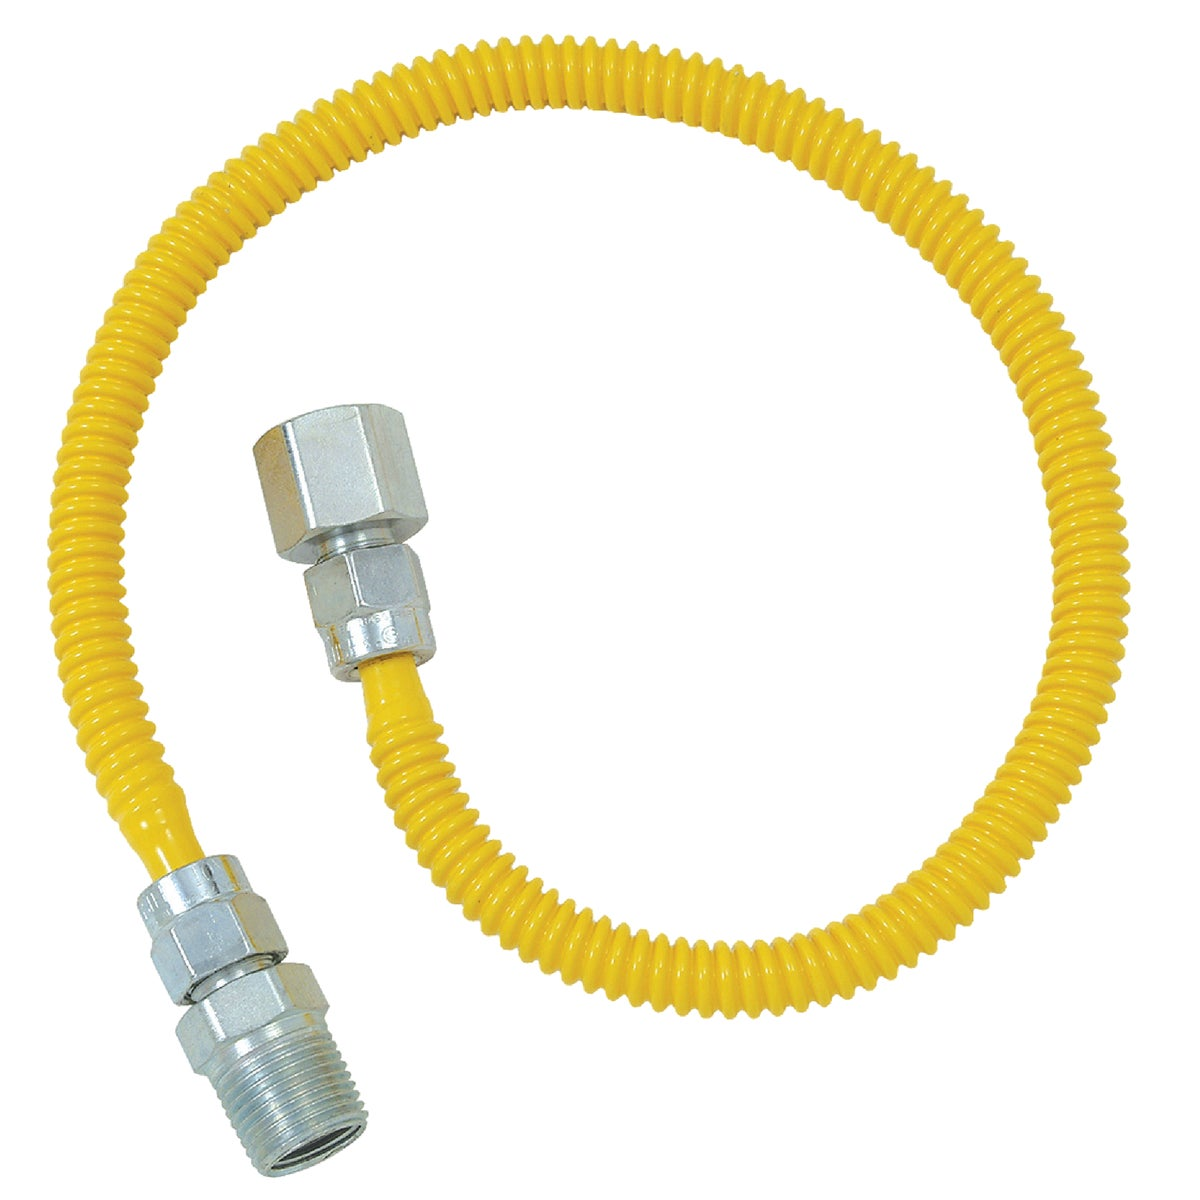 3/8X60 GAS CONNECTOR - CSSL54-60P by Brass Craft